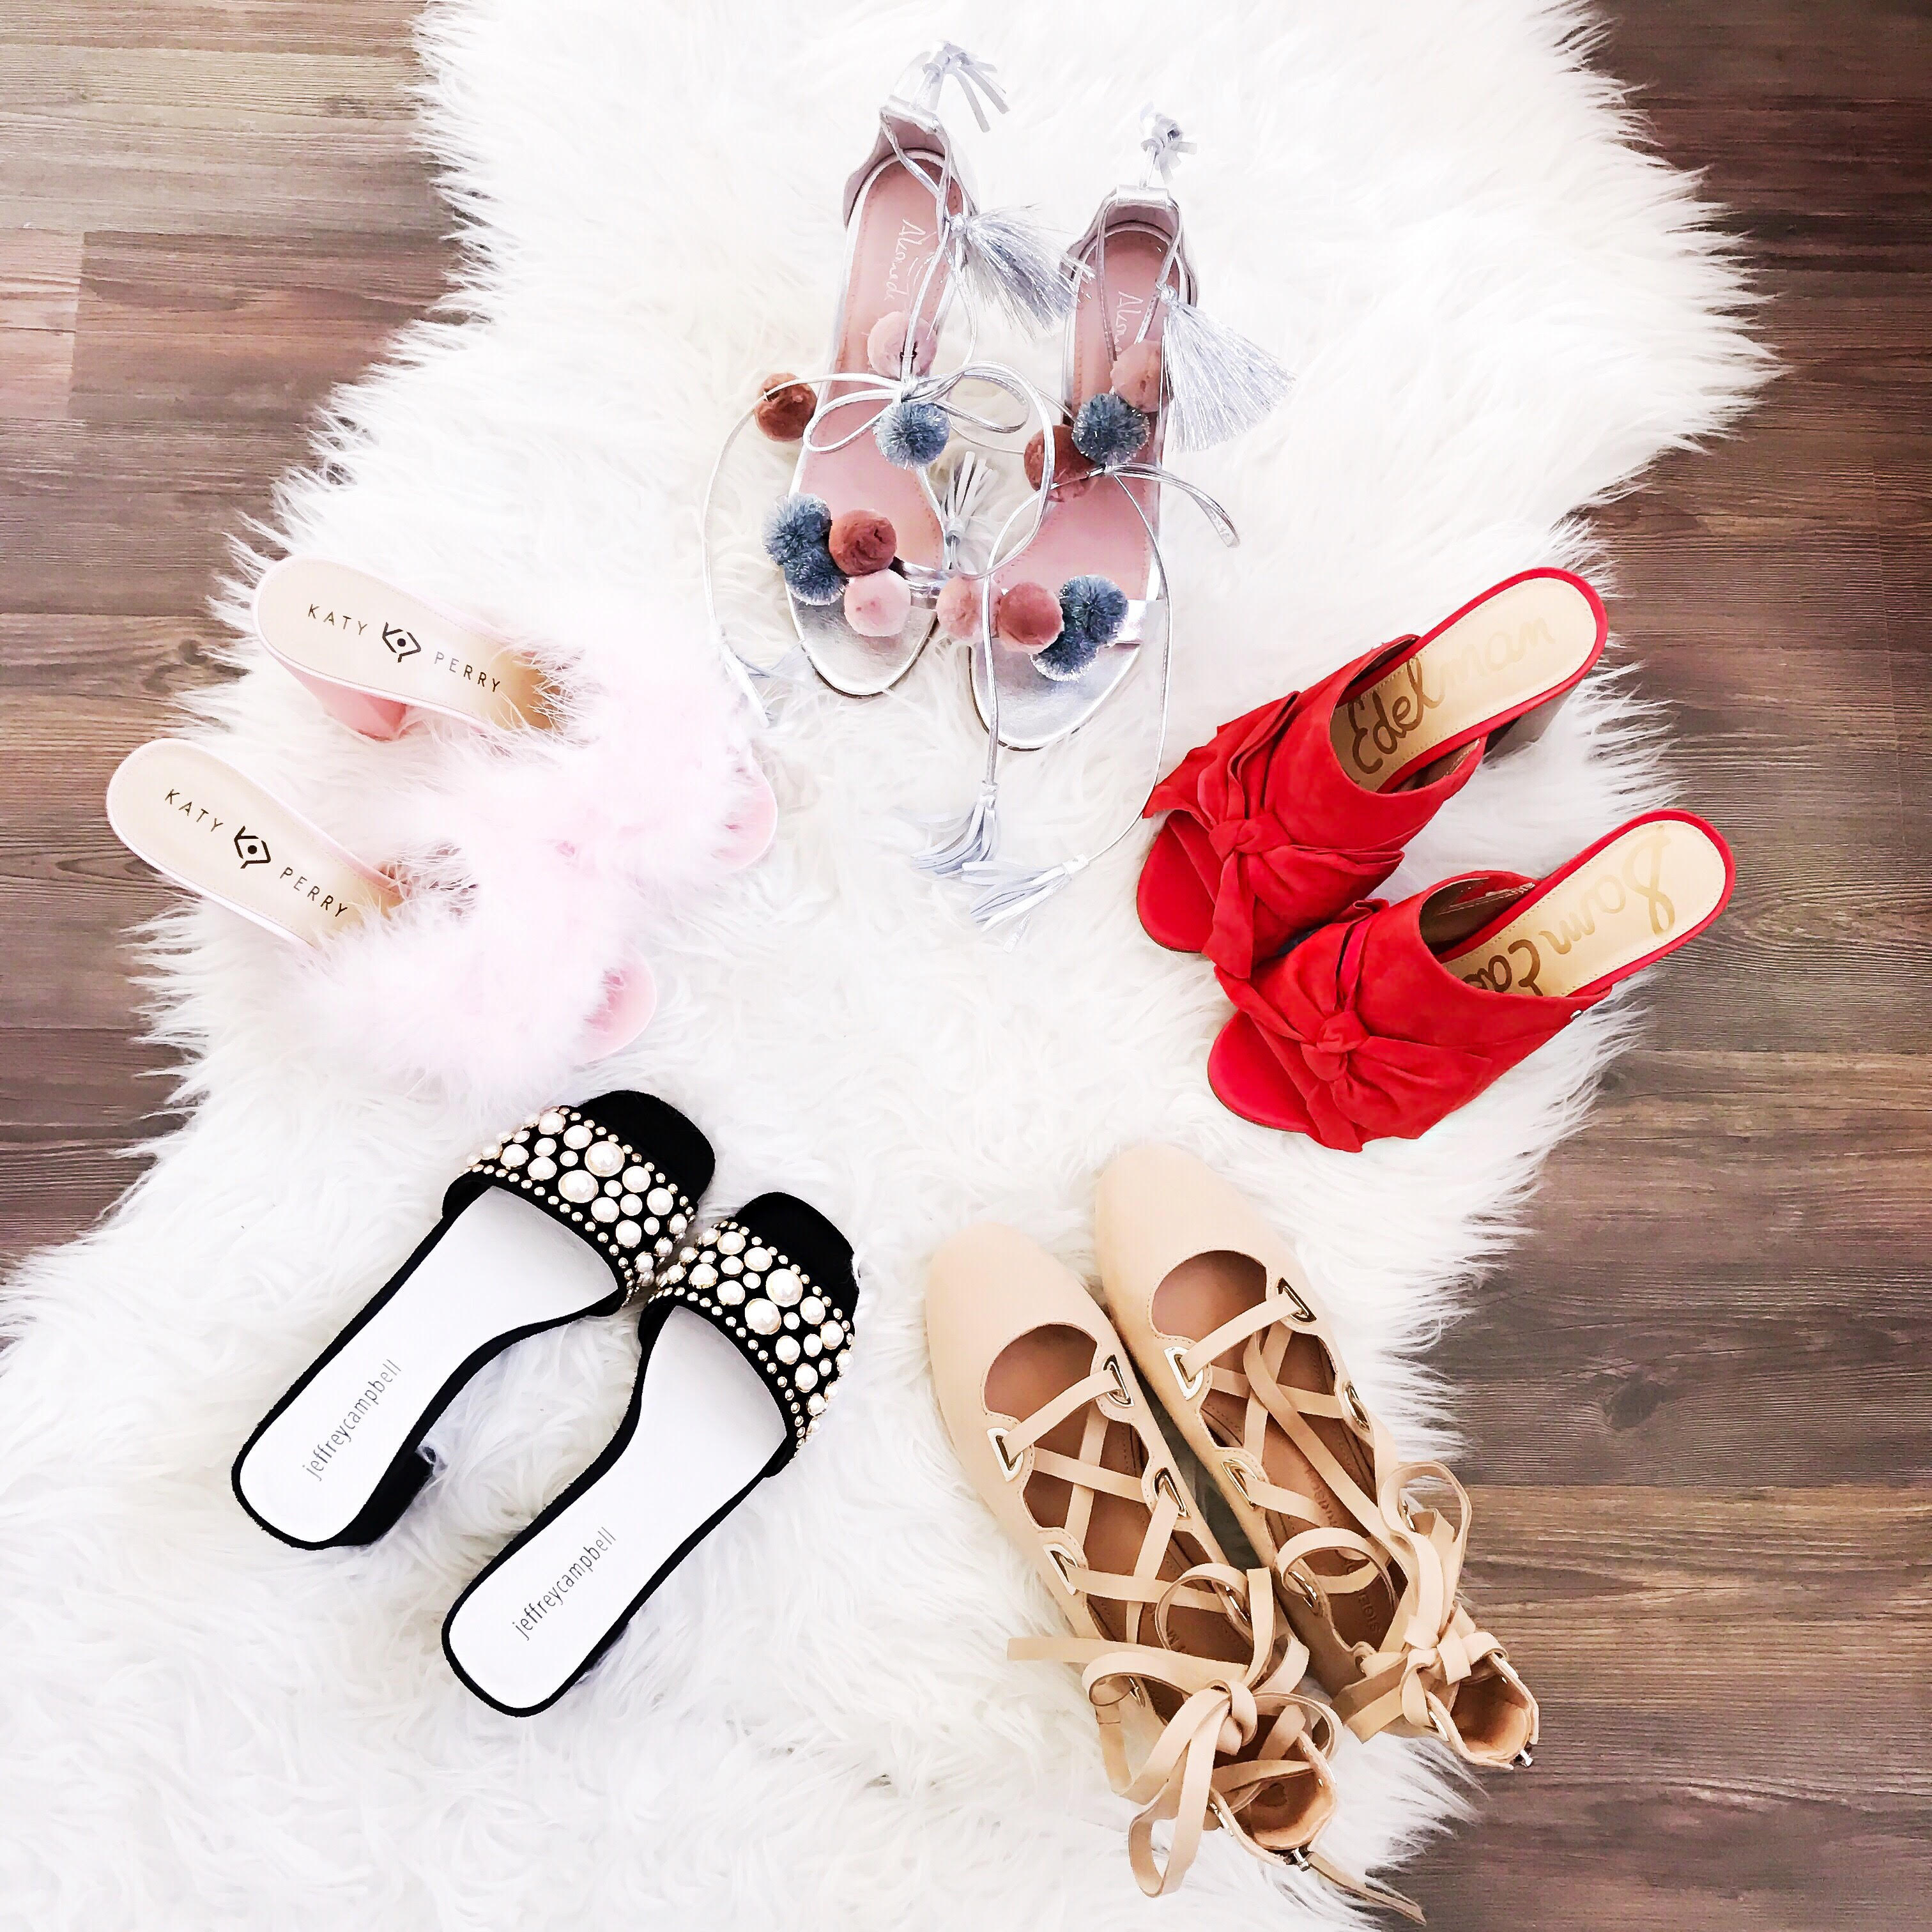 spring-shoes-new-in-trend-frühjahr-schuhe-mules-pompom